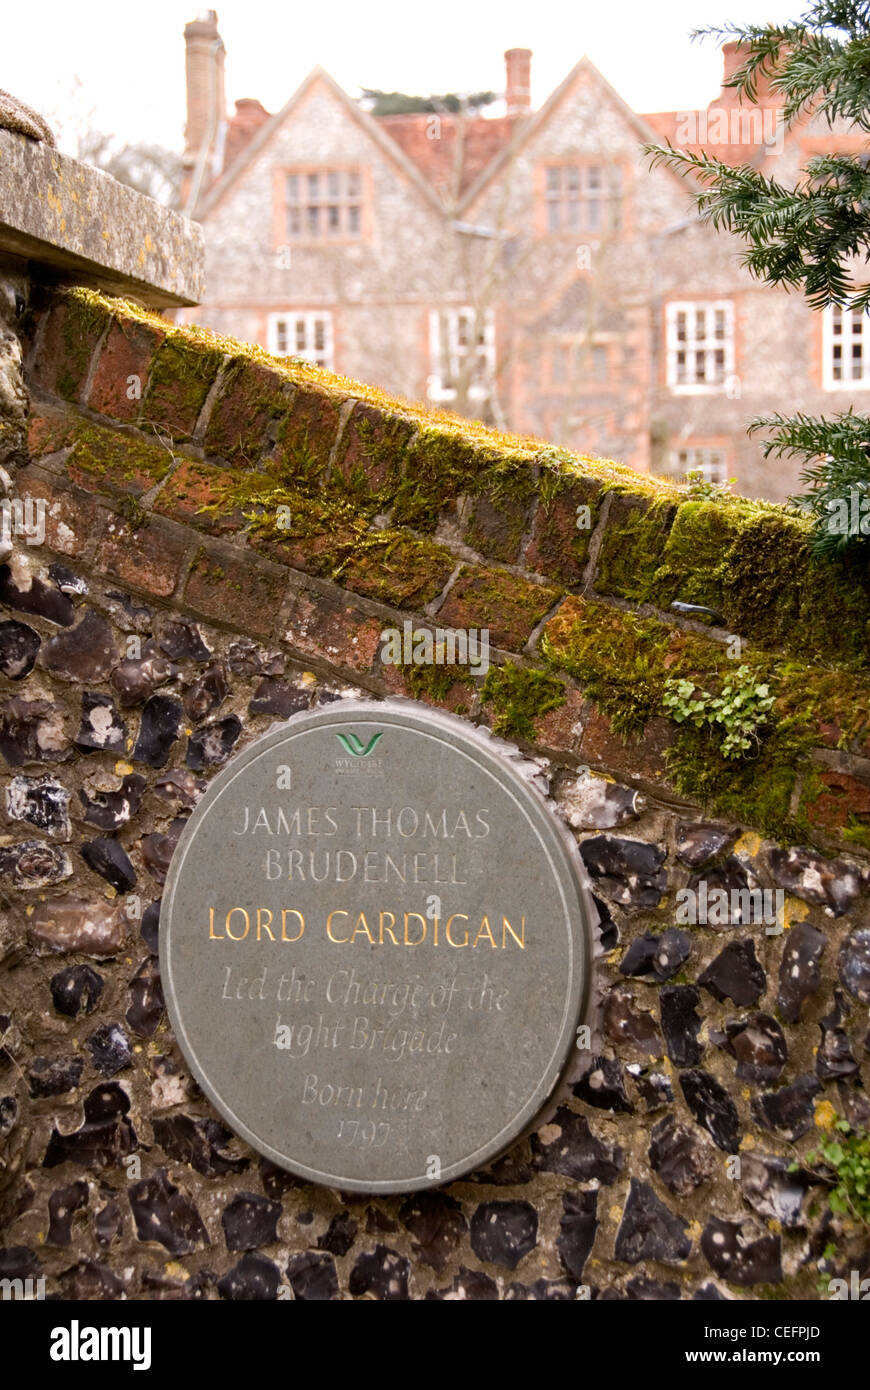 Chiltern Hills - Hambleden - manor house  - plaque for birth in 1797 of James Thomas Brudenell - Lord Cardigan - Stock Image